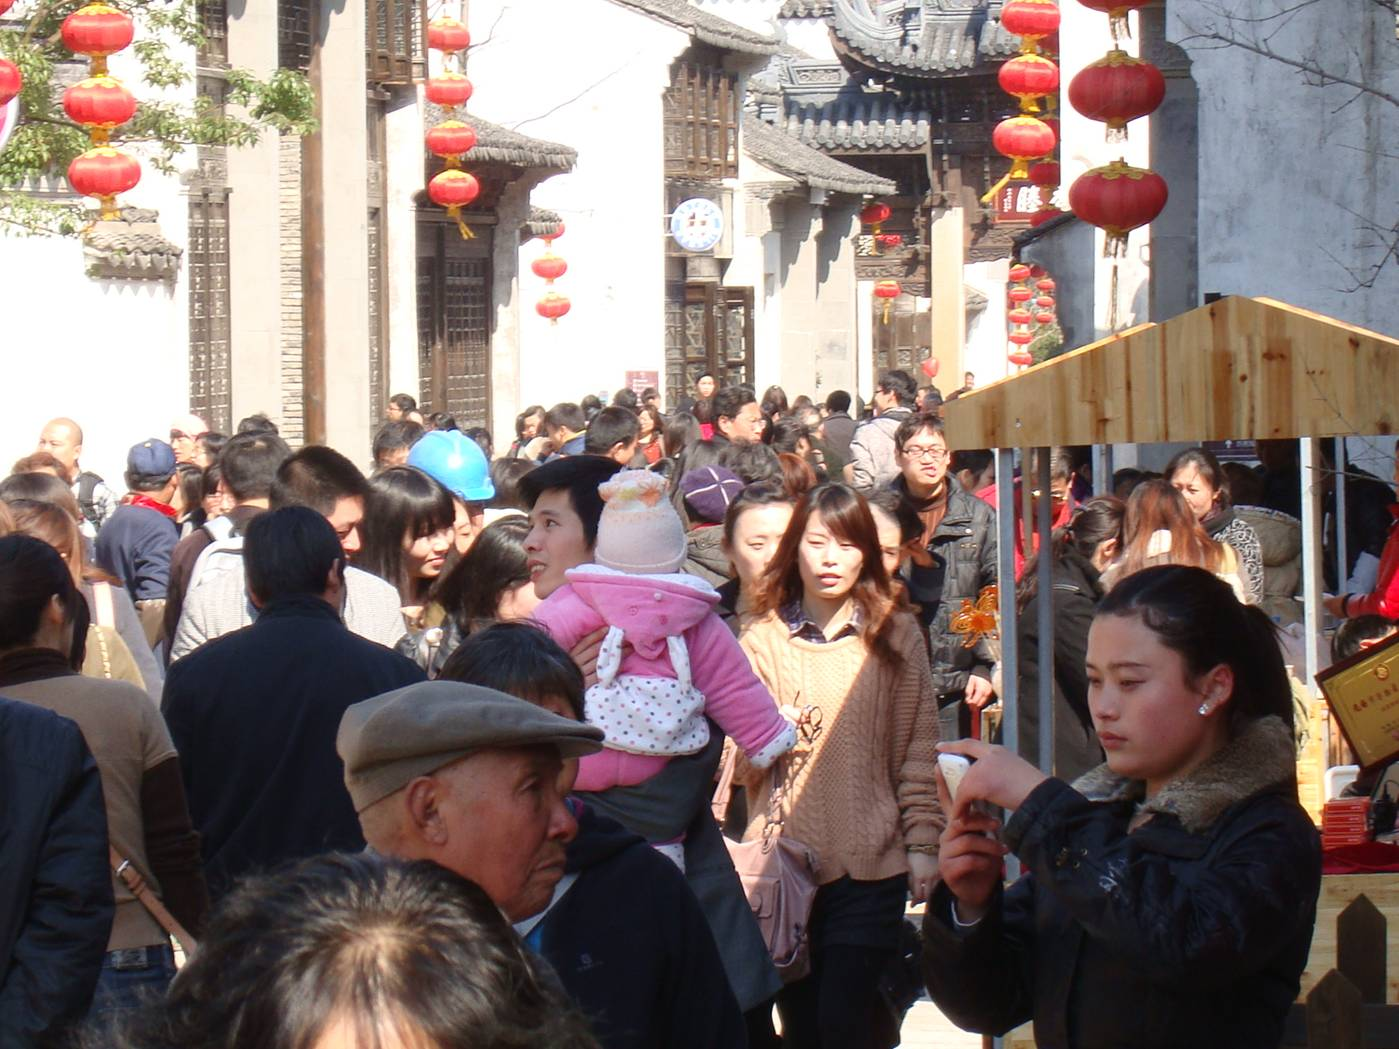 Picture:  This is the all too common image of China presented by western media.  Uncomfortably crowded.